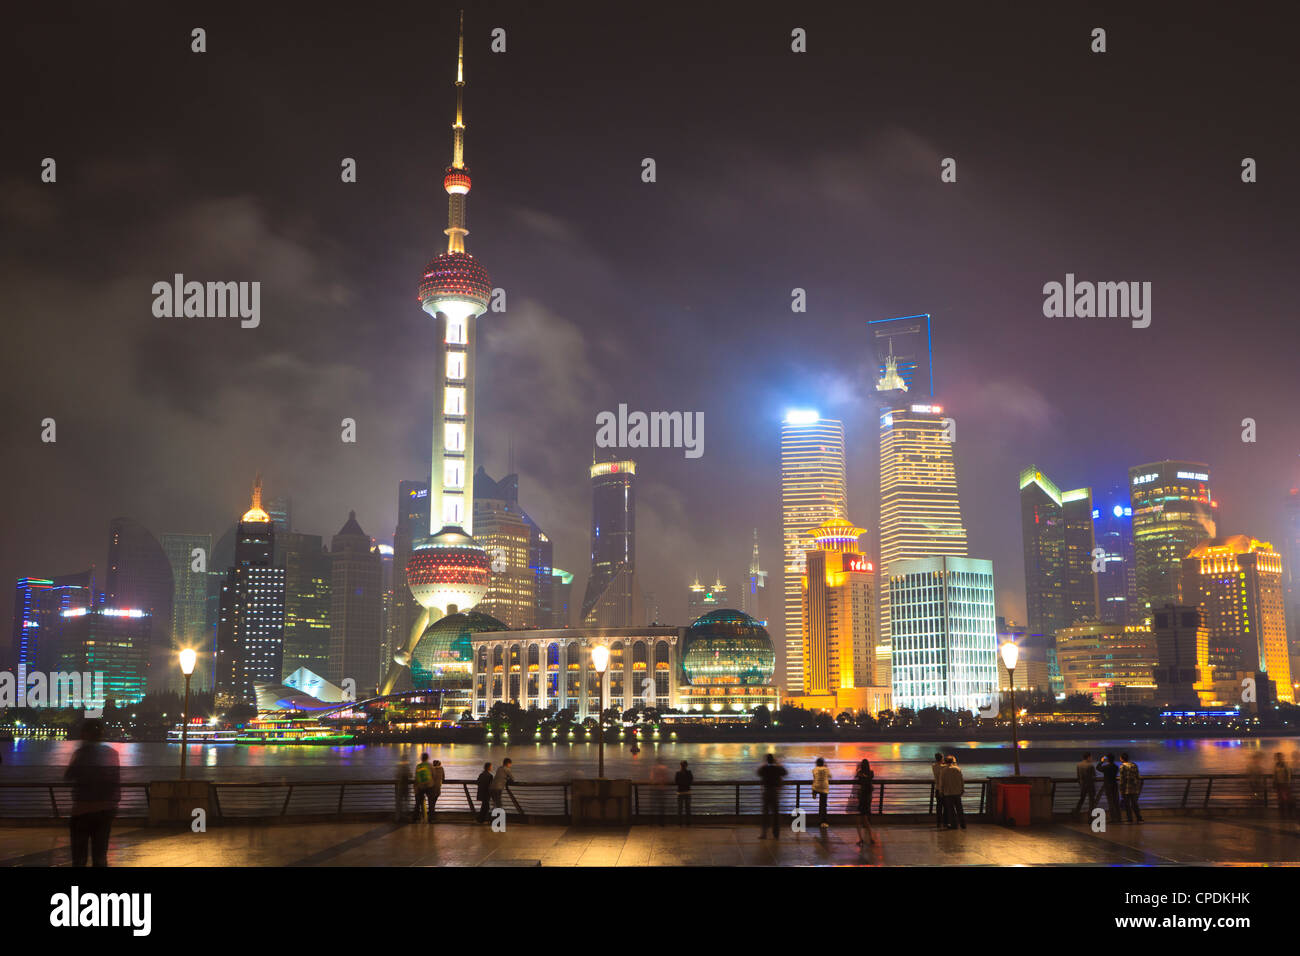 Pudong skyline at night across the Huangpu River, Oriental Pearl tower on left, Shanghai, China, Asia - Stock Image